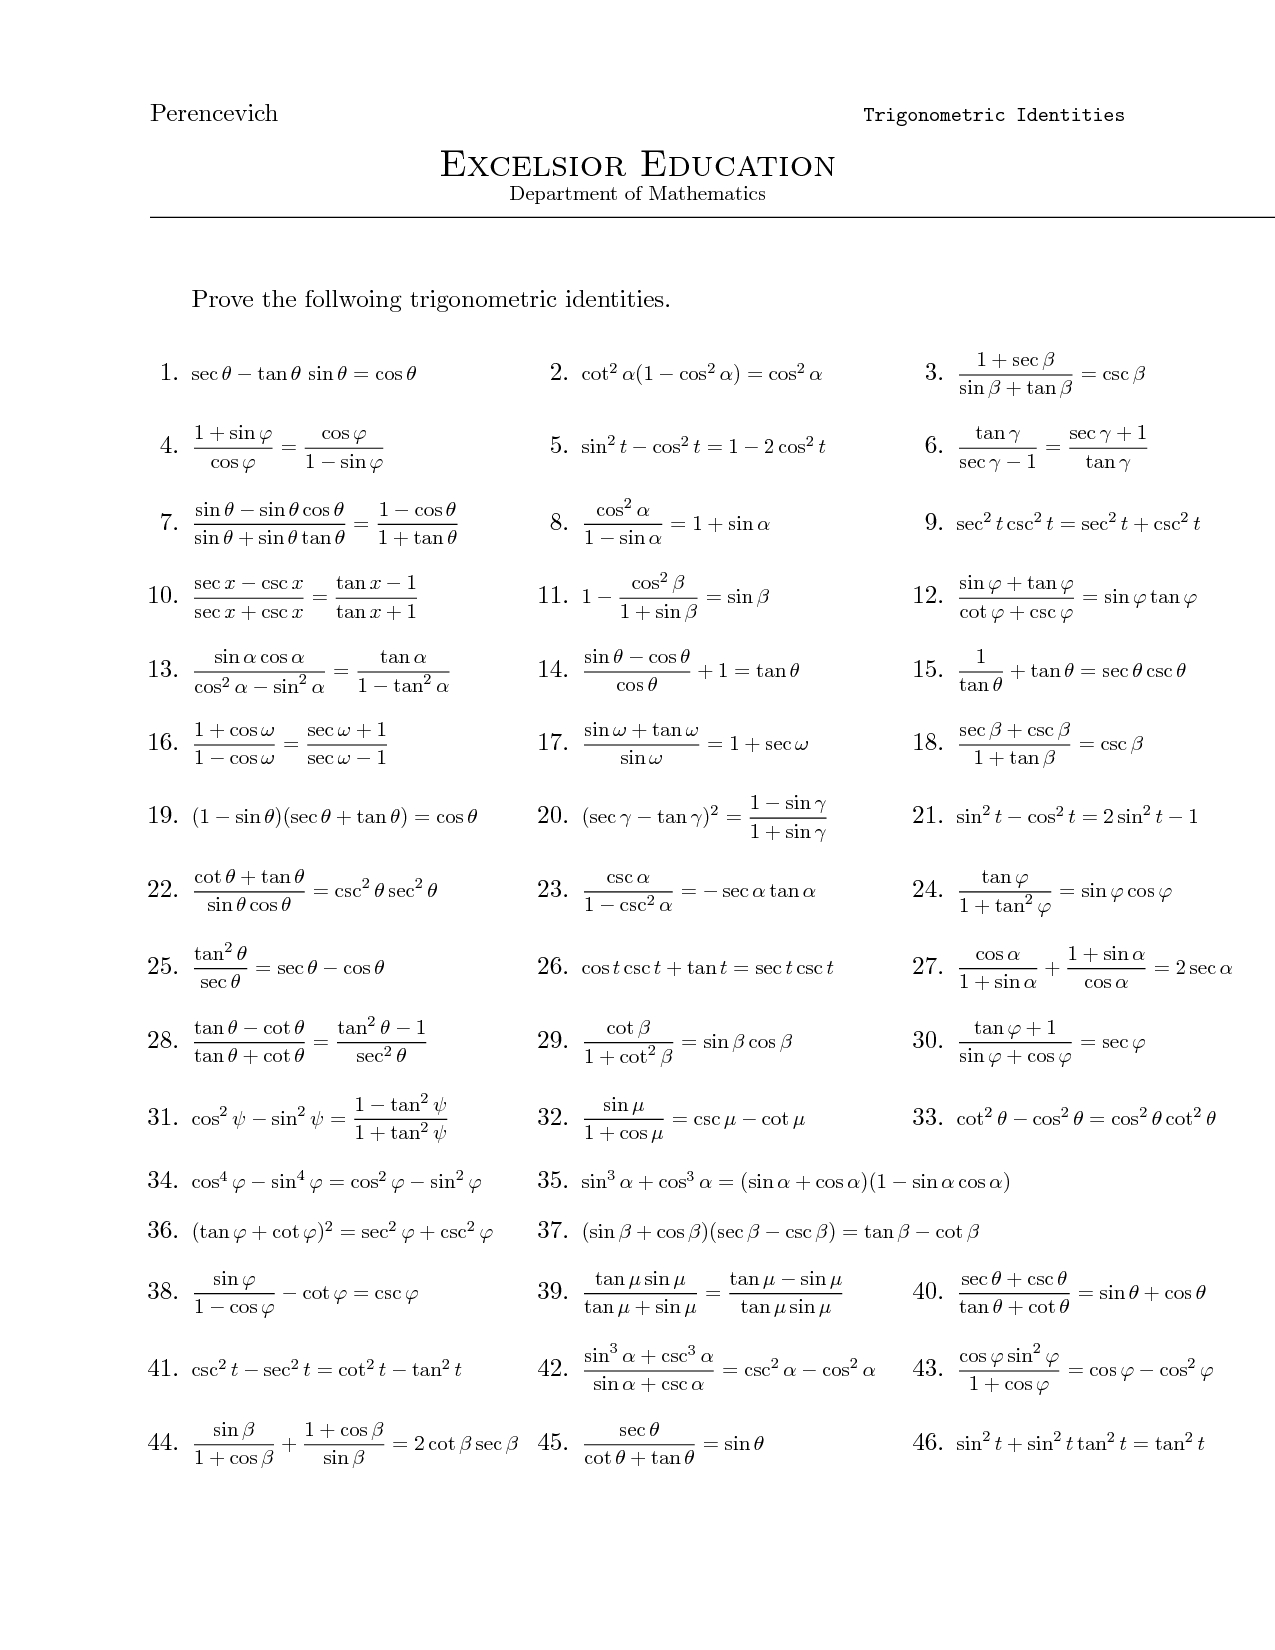 Inverse Trig Functions Worksheet With Answers